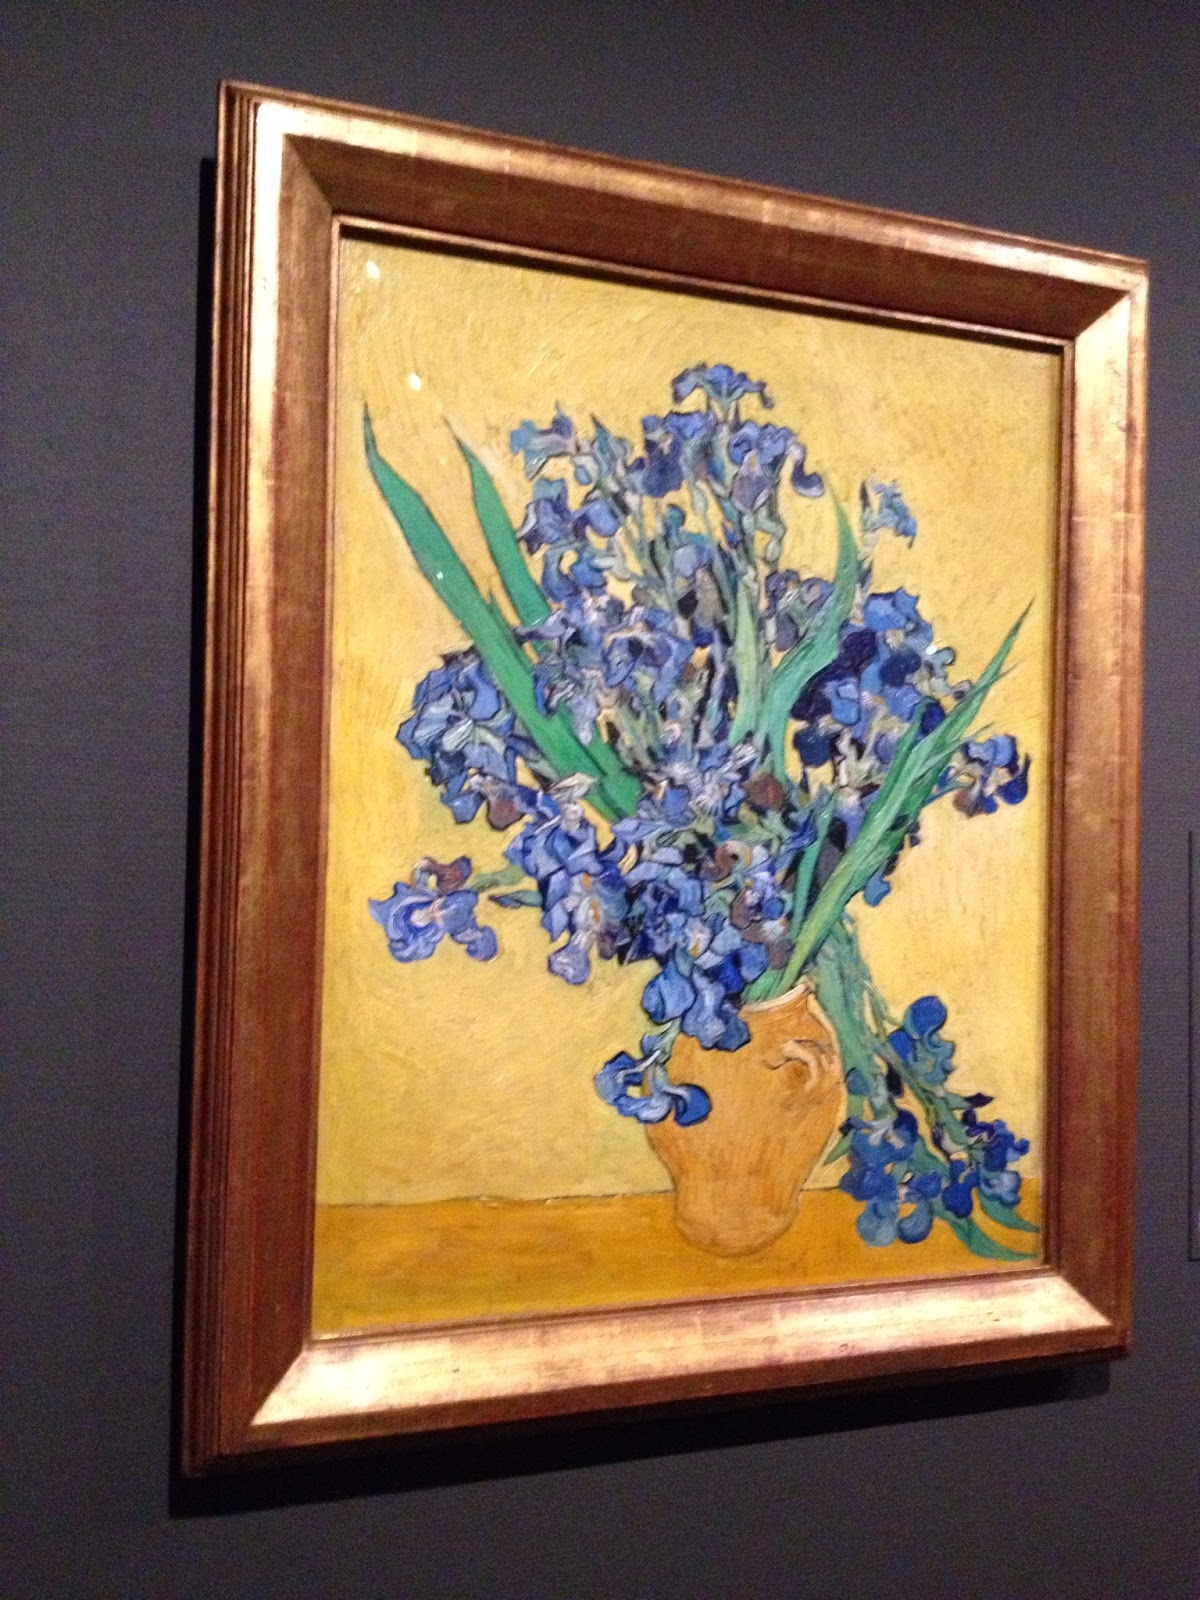 Amsterdam - Van Gogh's Still Life: Vase with Irises Against a Yellow Background